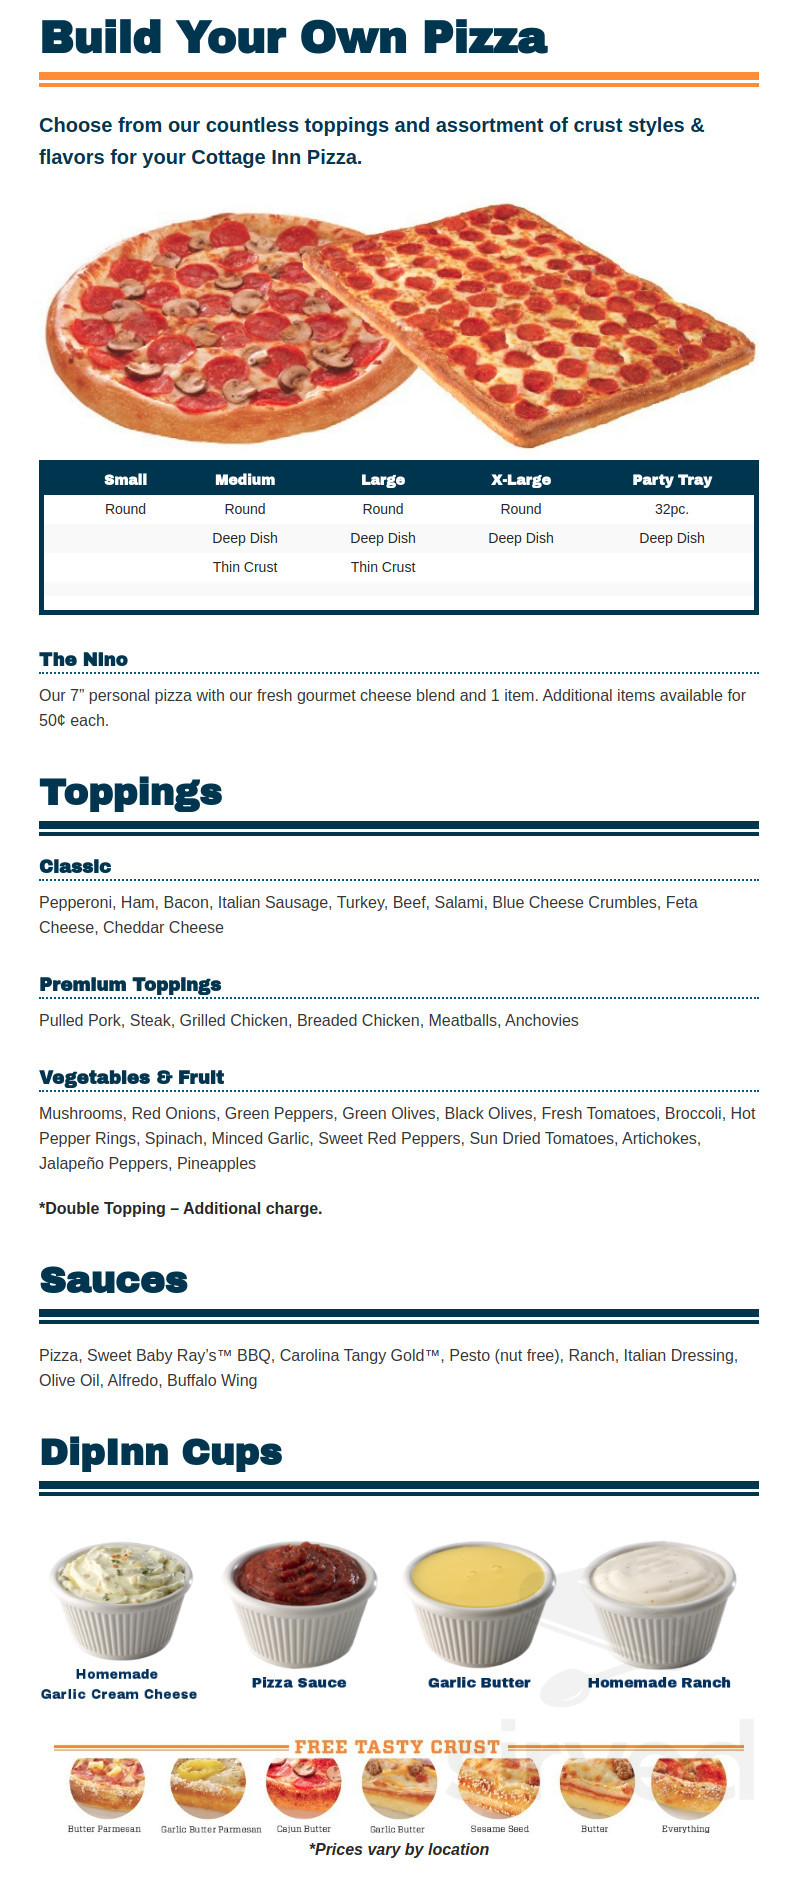 Swell Menu For Cottage Inn Pizza Taverna In New Hudson Michigan Interior Design Ideas Greaswefileorg